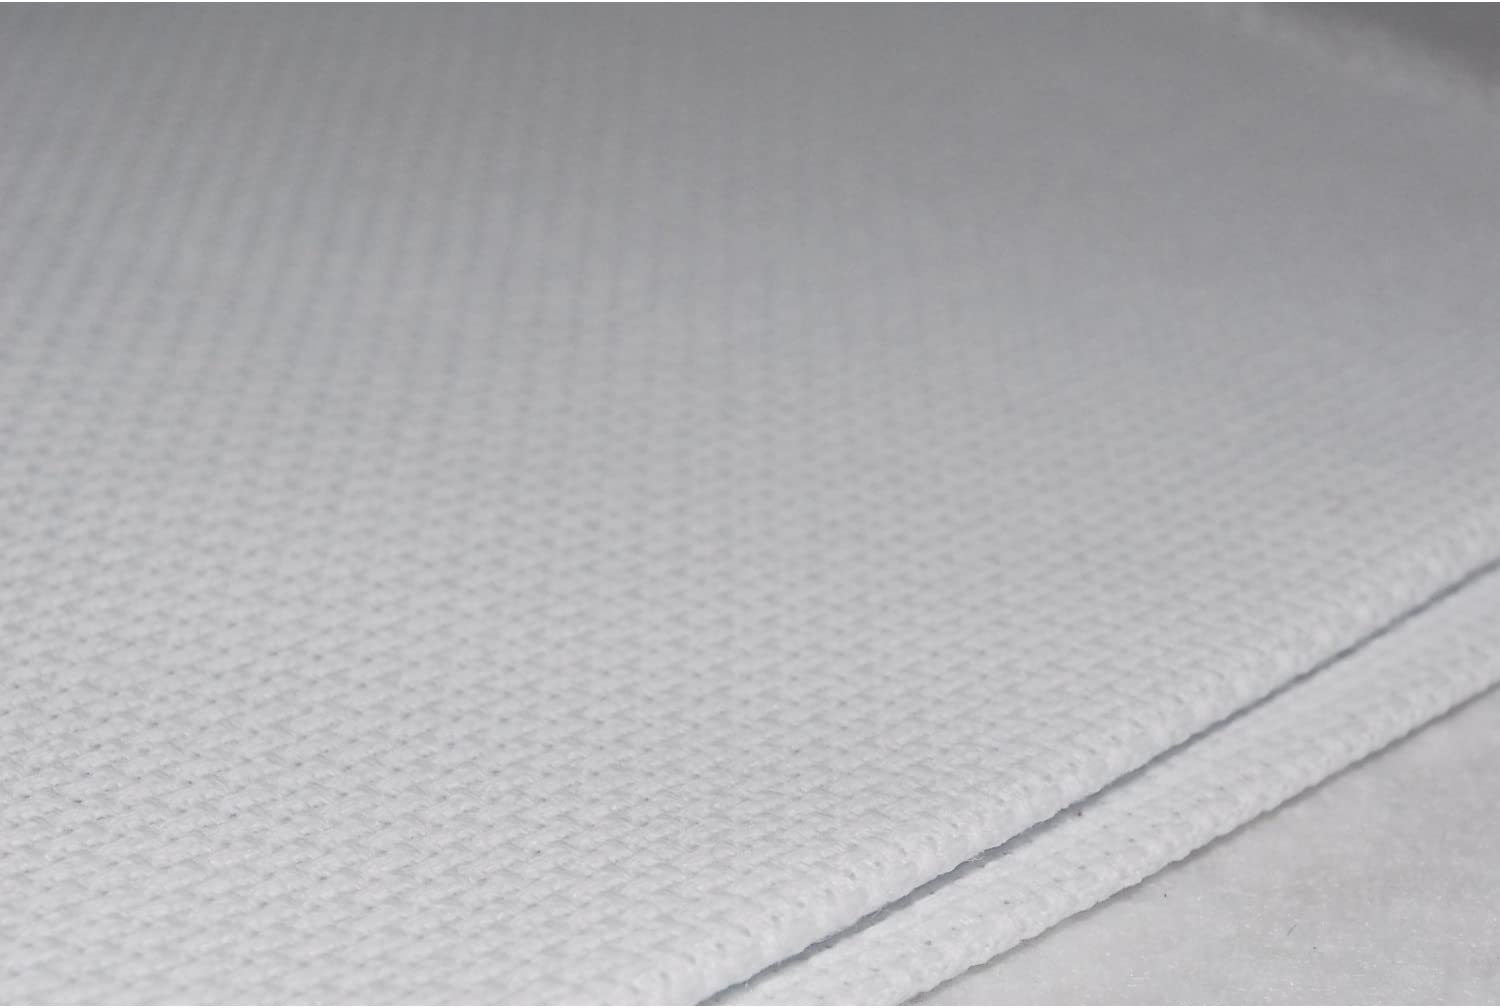 Cheap mail order specialty store 14 Count Aida Cloth - White 5 Yard Bolt Memphis Mall 60